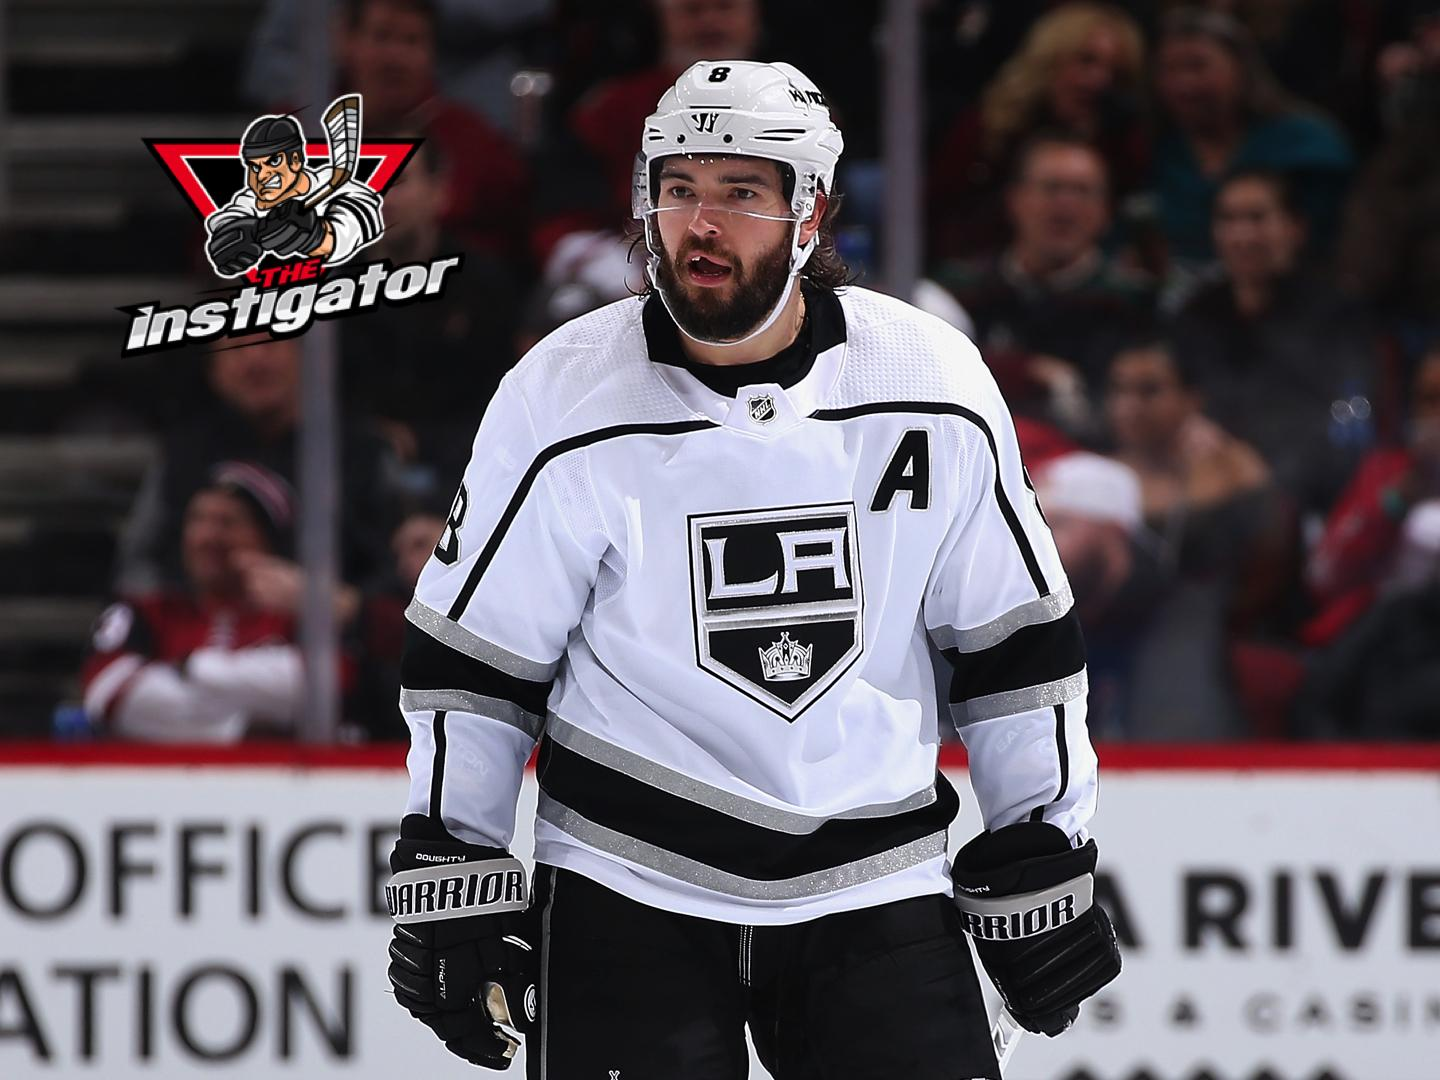 Doughty: Criticism to Boost Your Ego